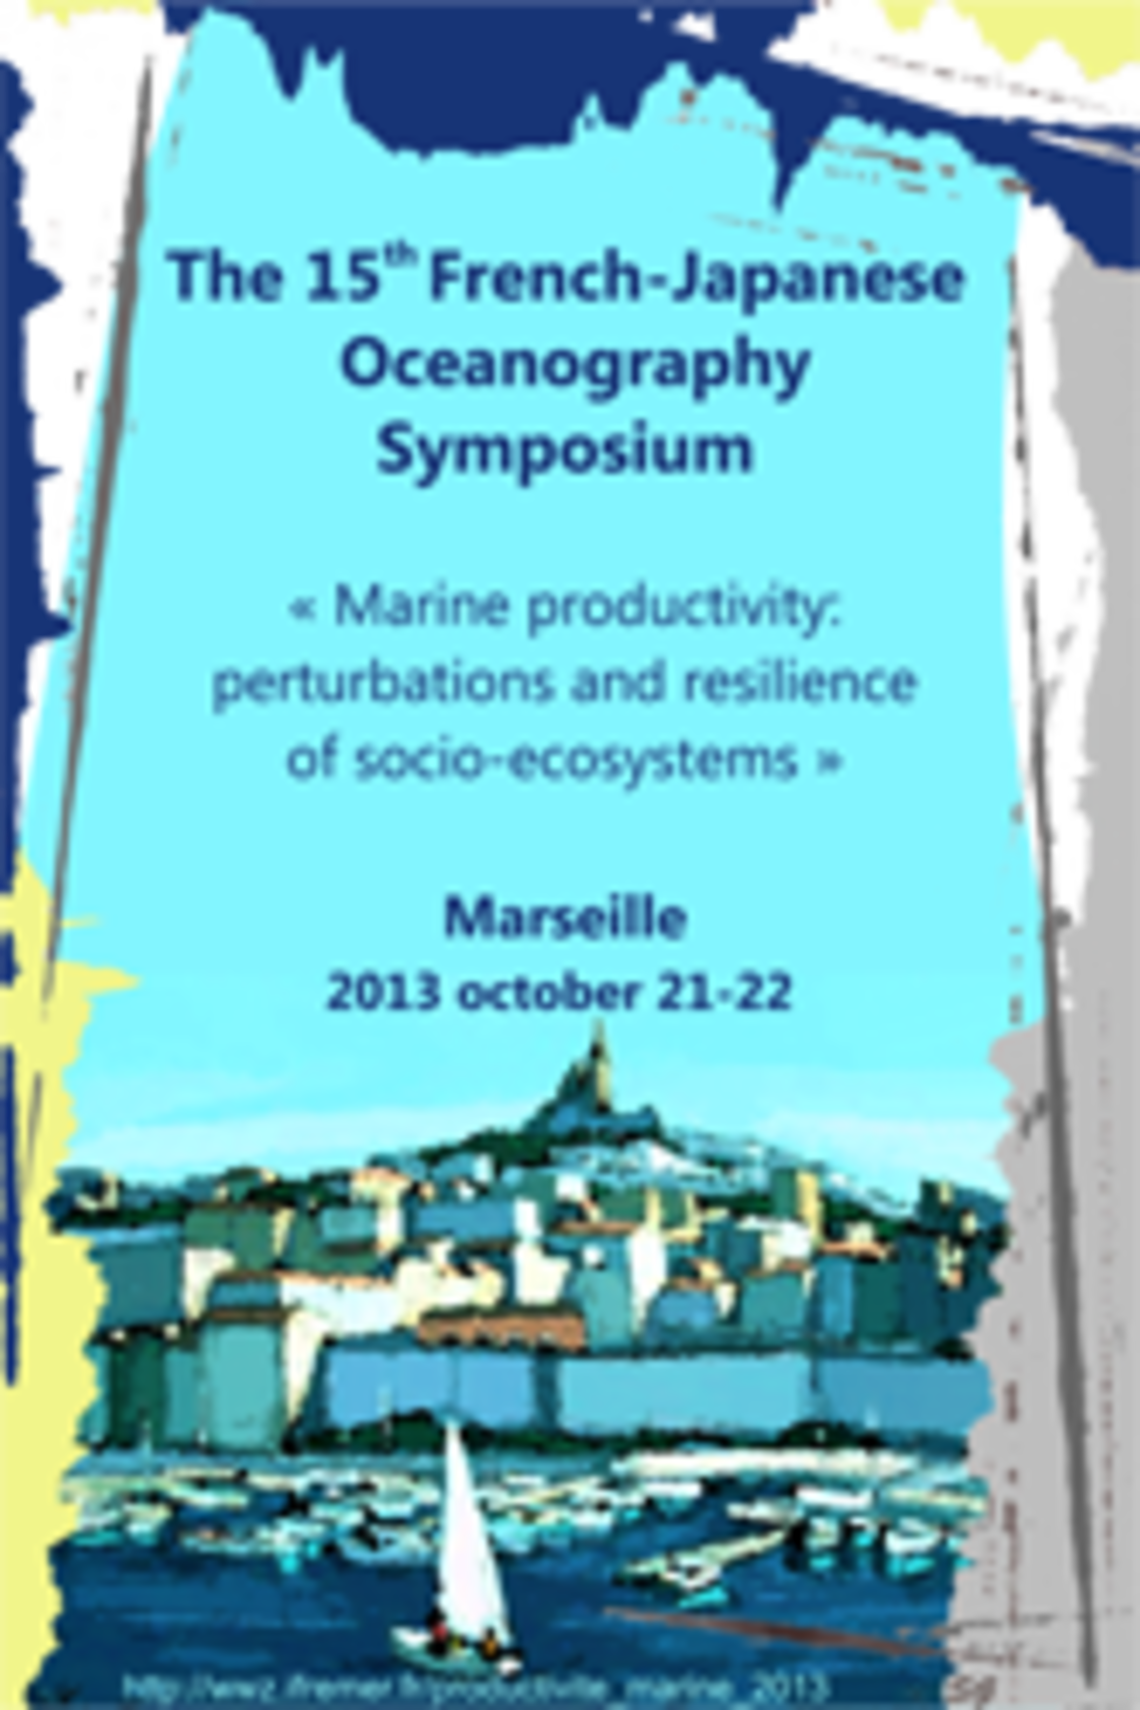 Small picture of Marseille conference